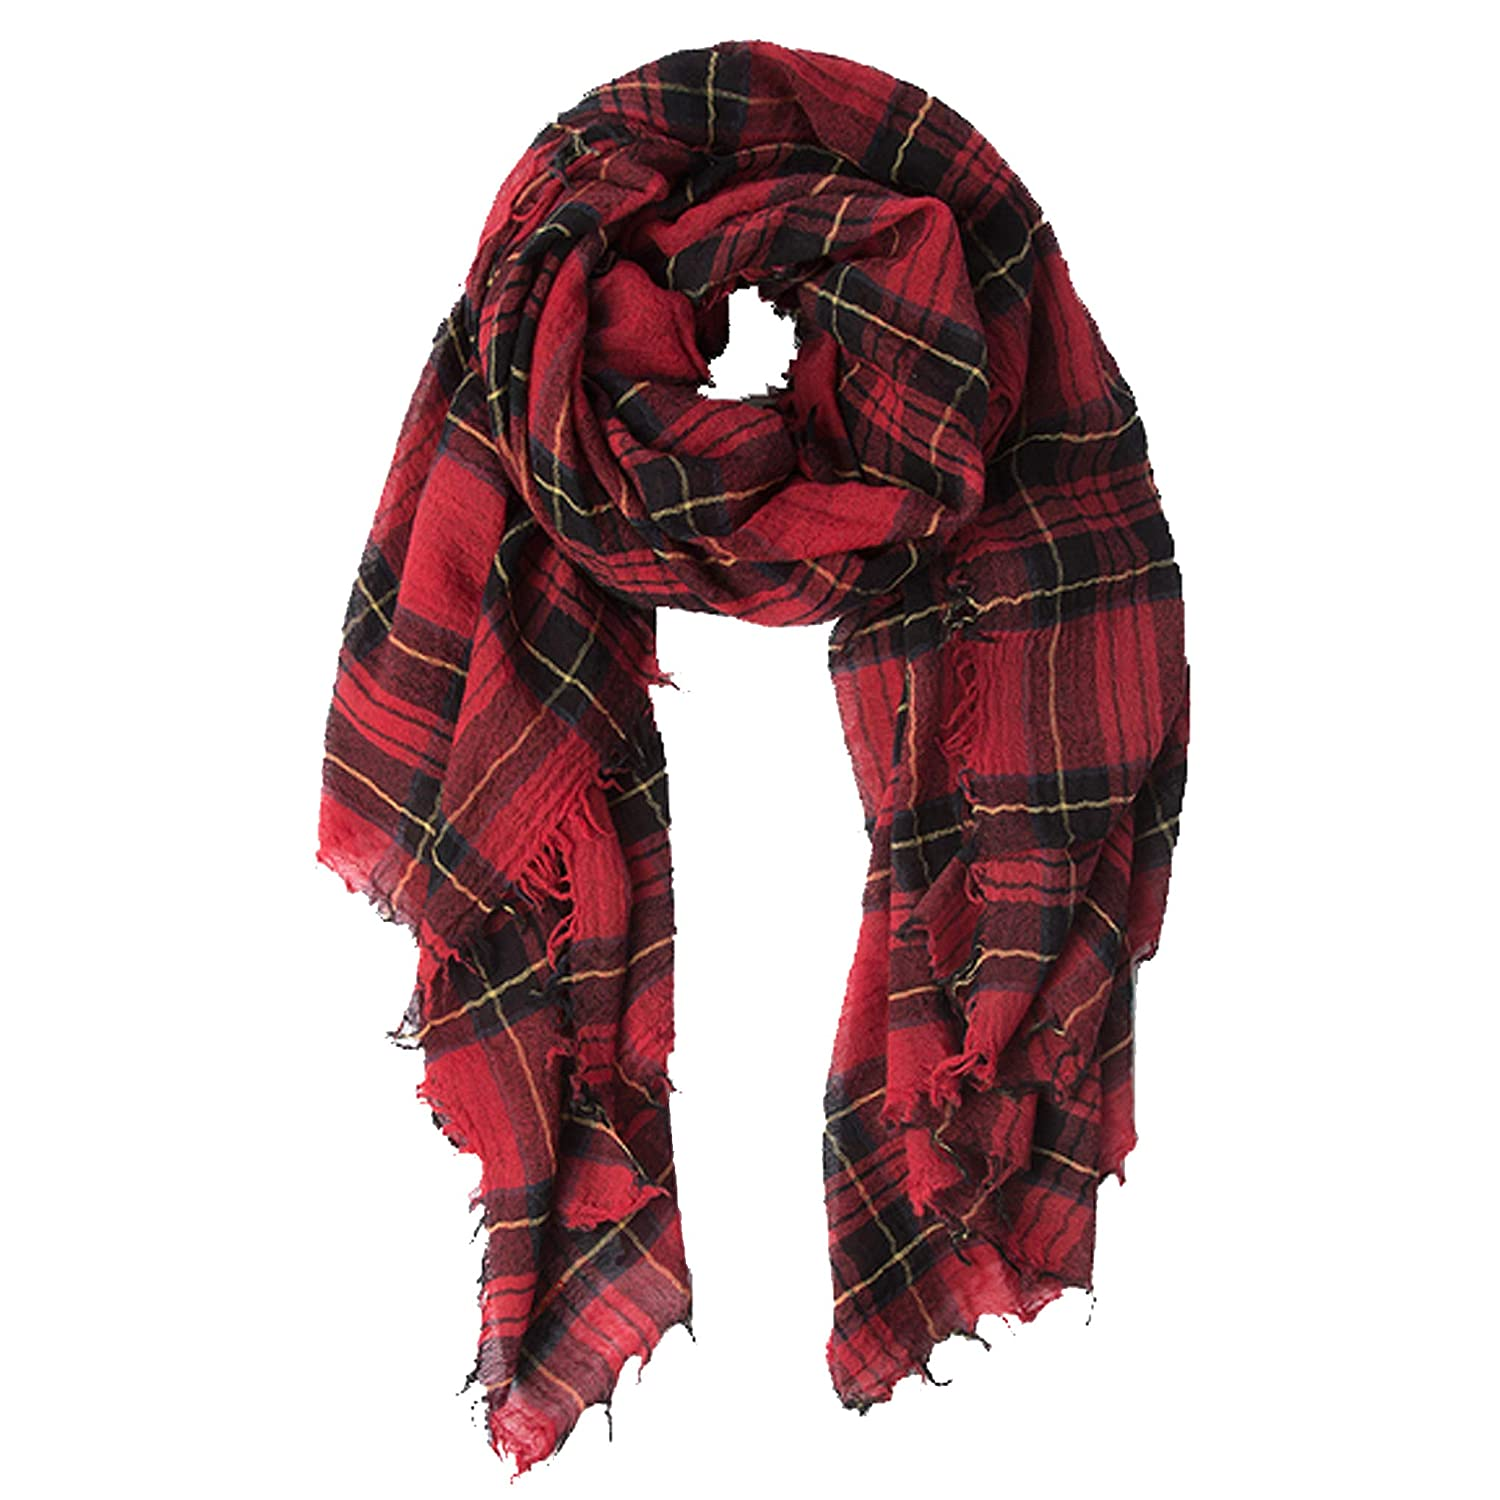 Chan Luu Combo Plaid Print Wool Scarf in Red and Black